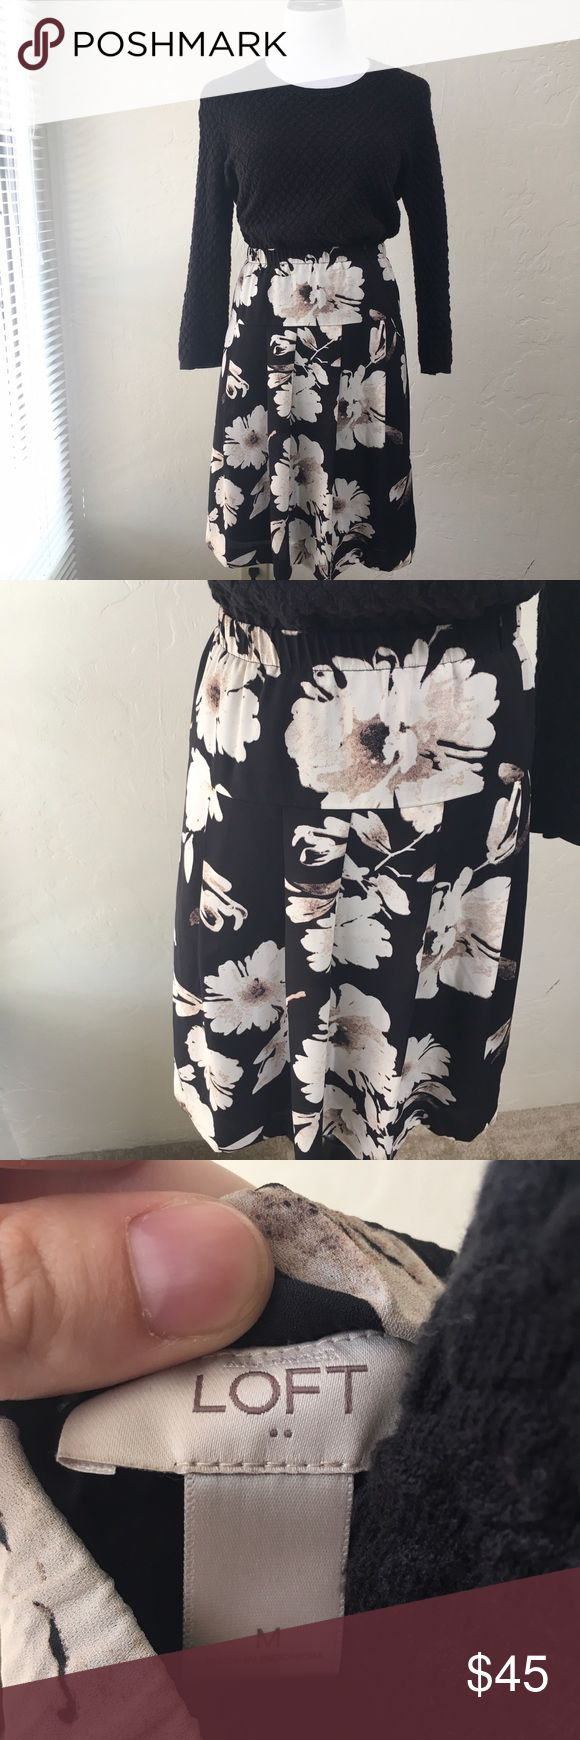 Floral Skirt Fully lined floral skirt with elastic waist. In excellent used condition. Measurements only by request. Can fit a L as well. Sweater is also listed for sale in separate listing. From factory store. LOFT Skirts